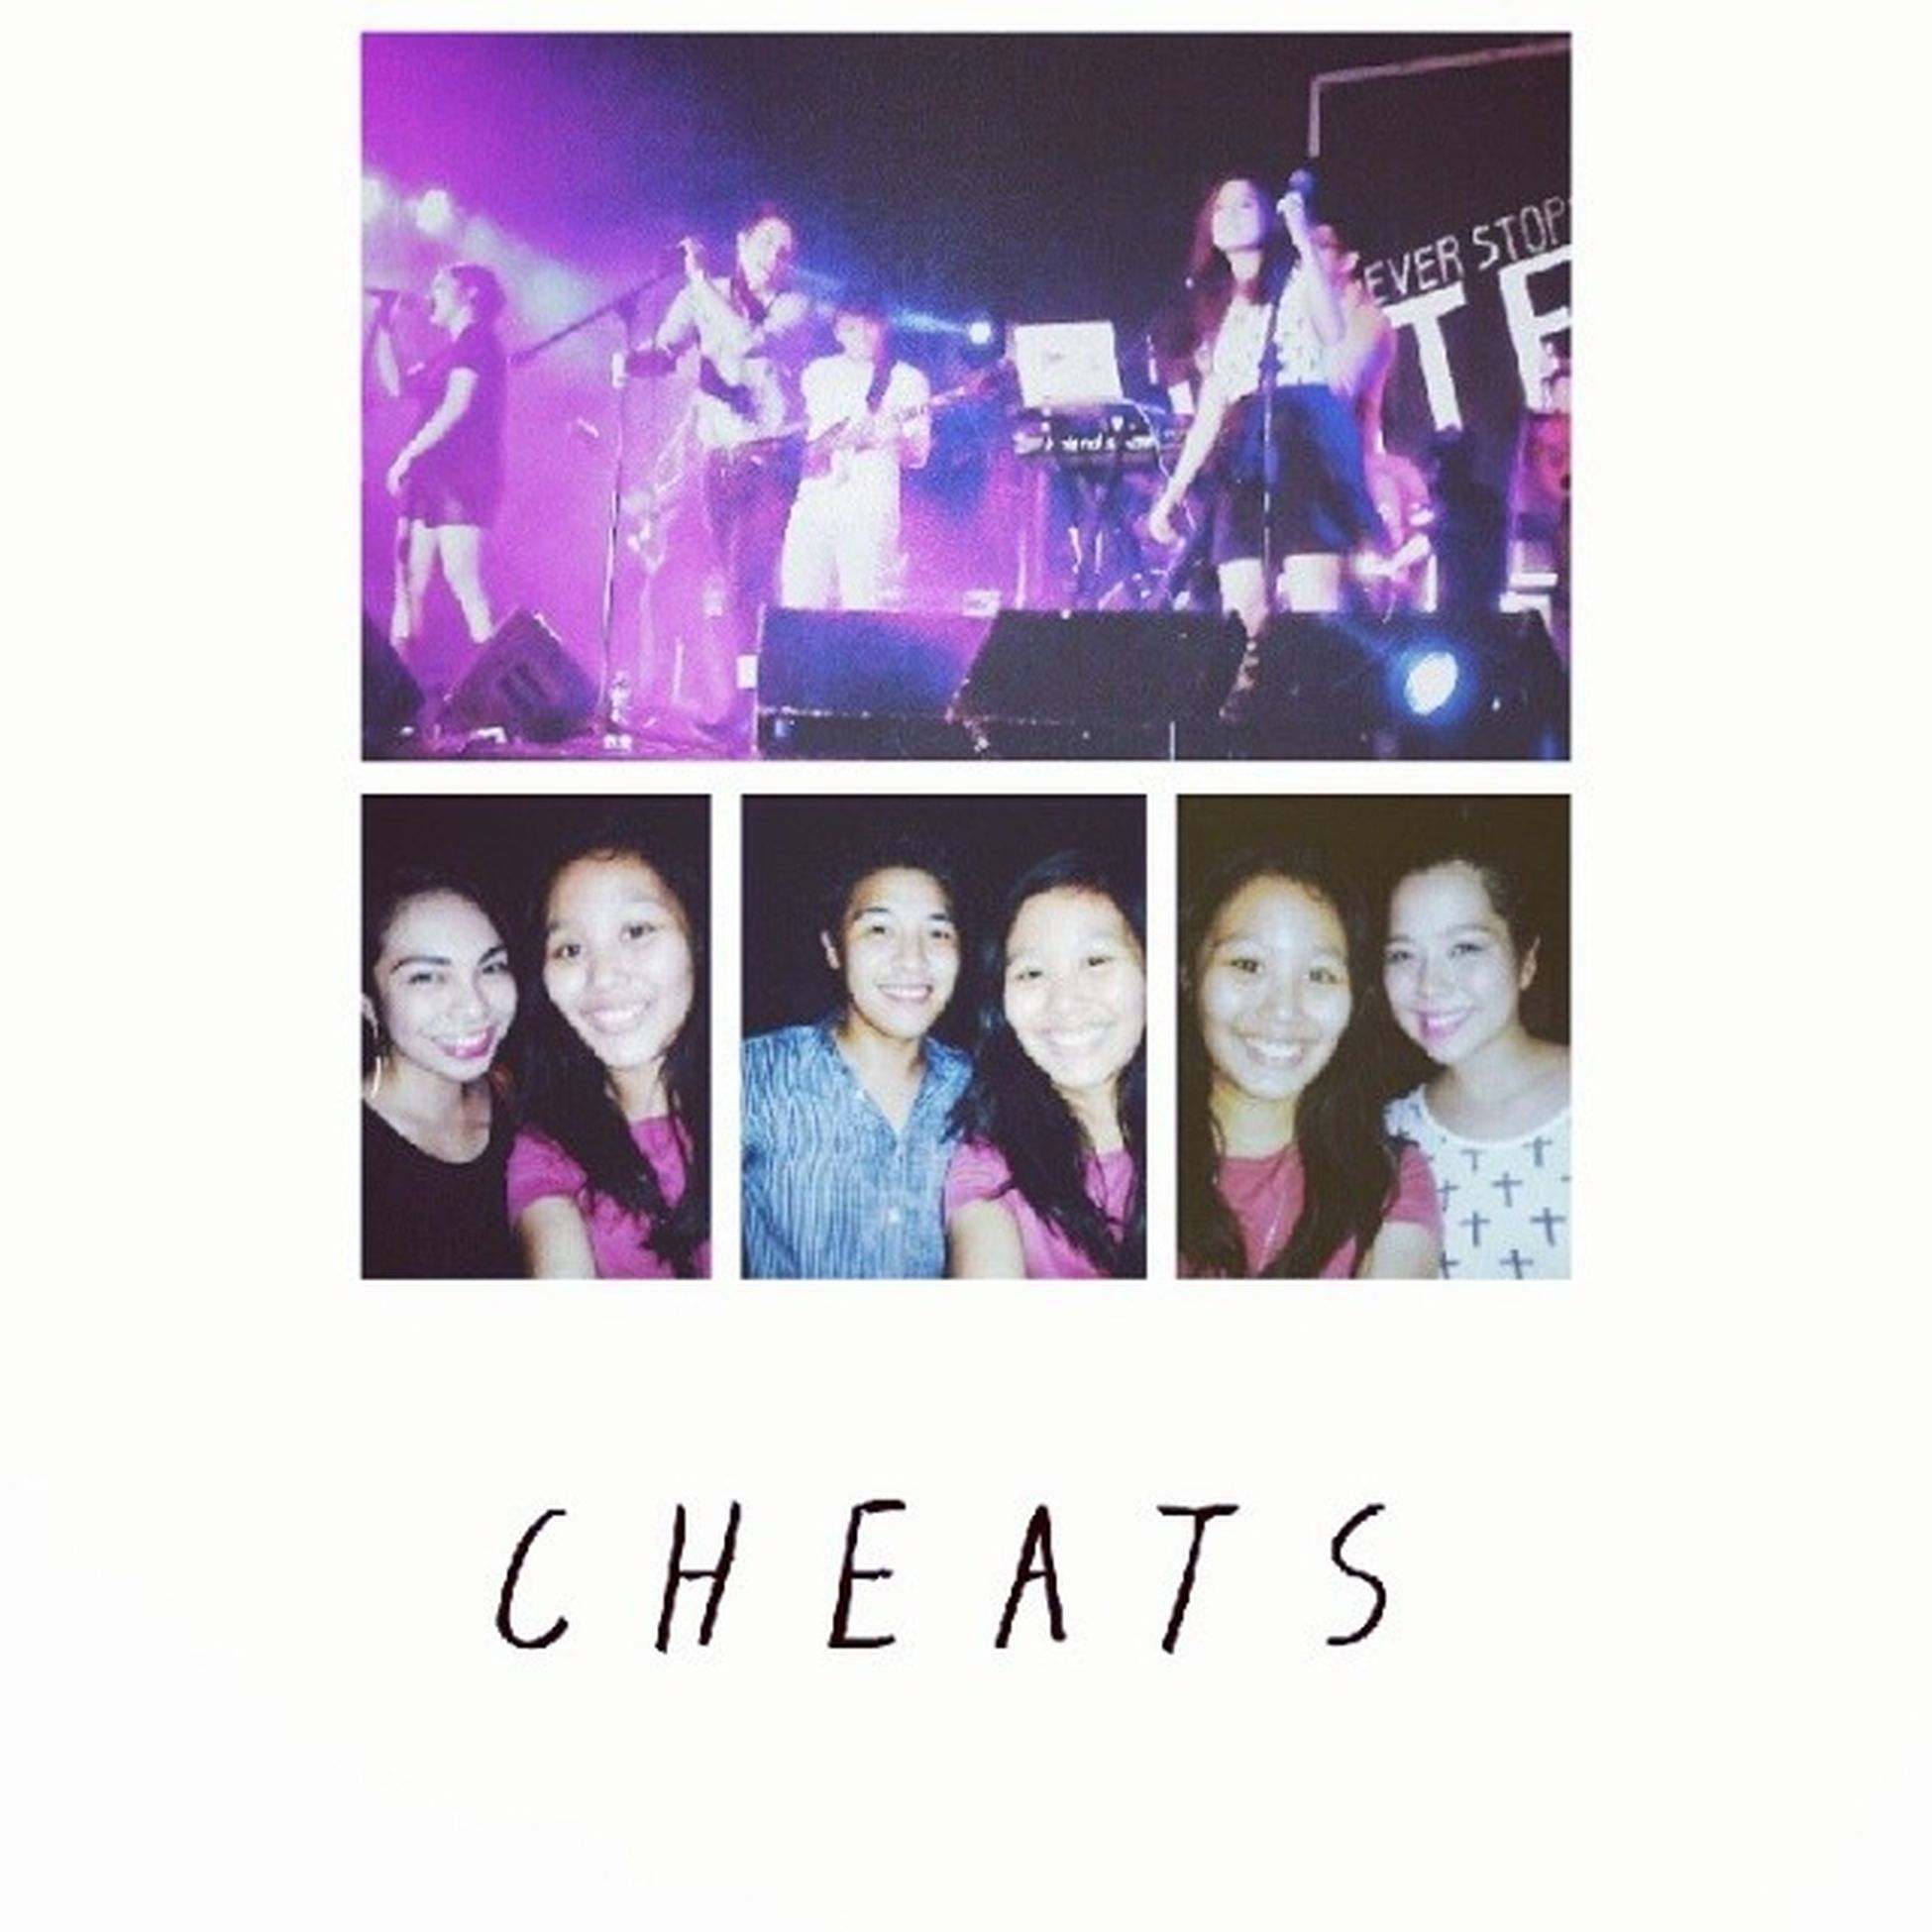 Had an awesome time last night!!! Thank you, CHEATS!!! ♥♥♥ UNITEDConcert HelpingNeverStops